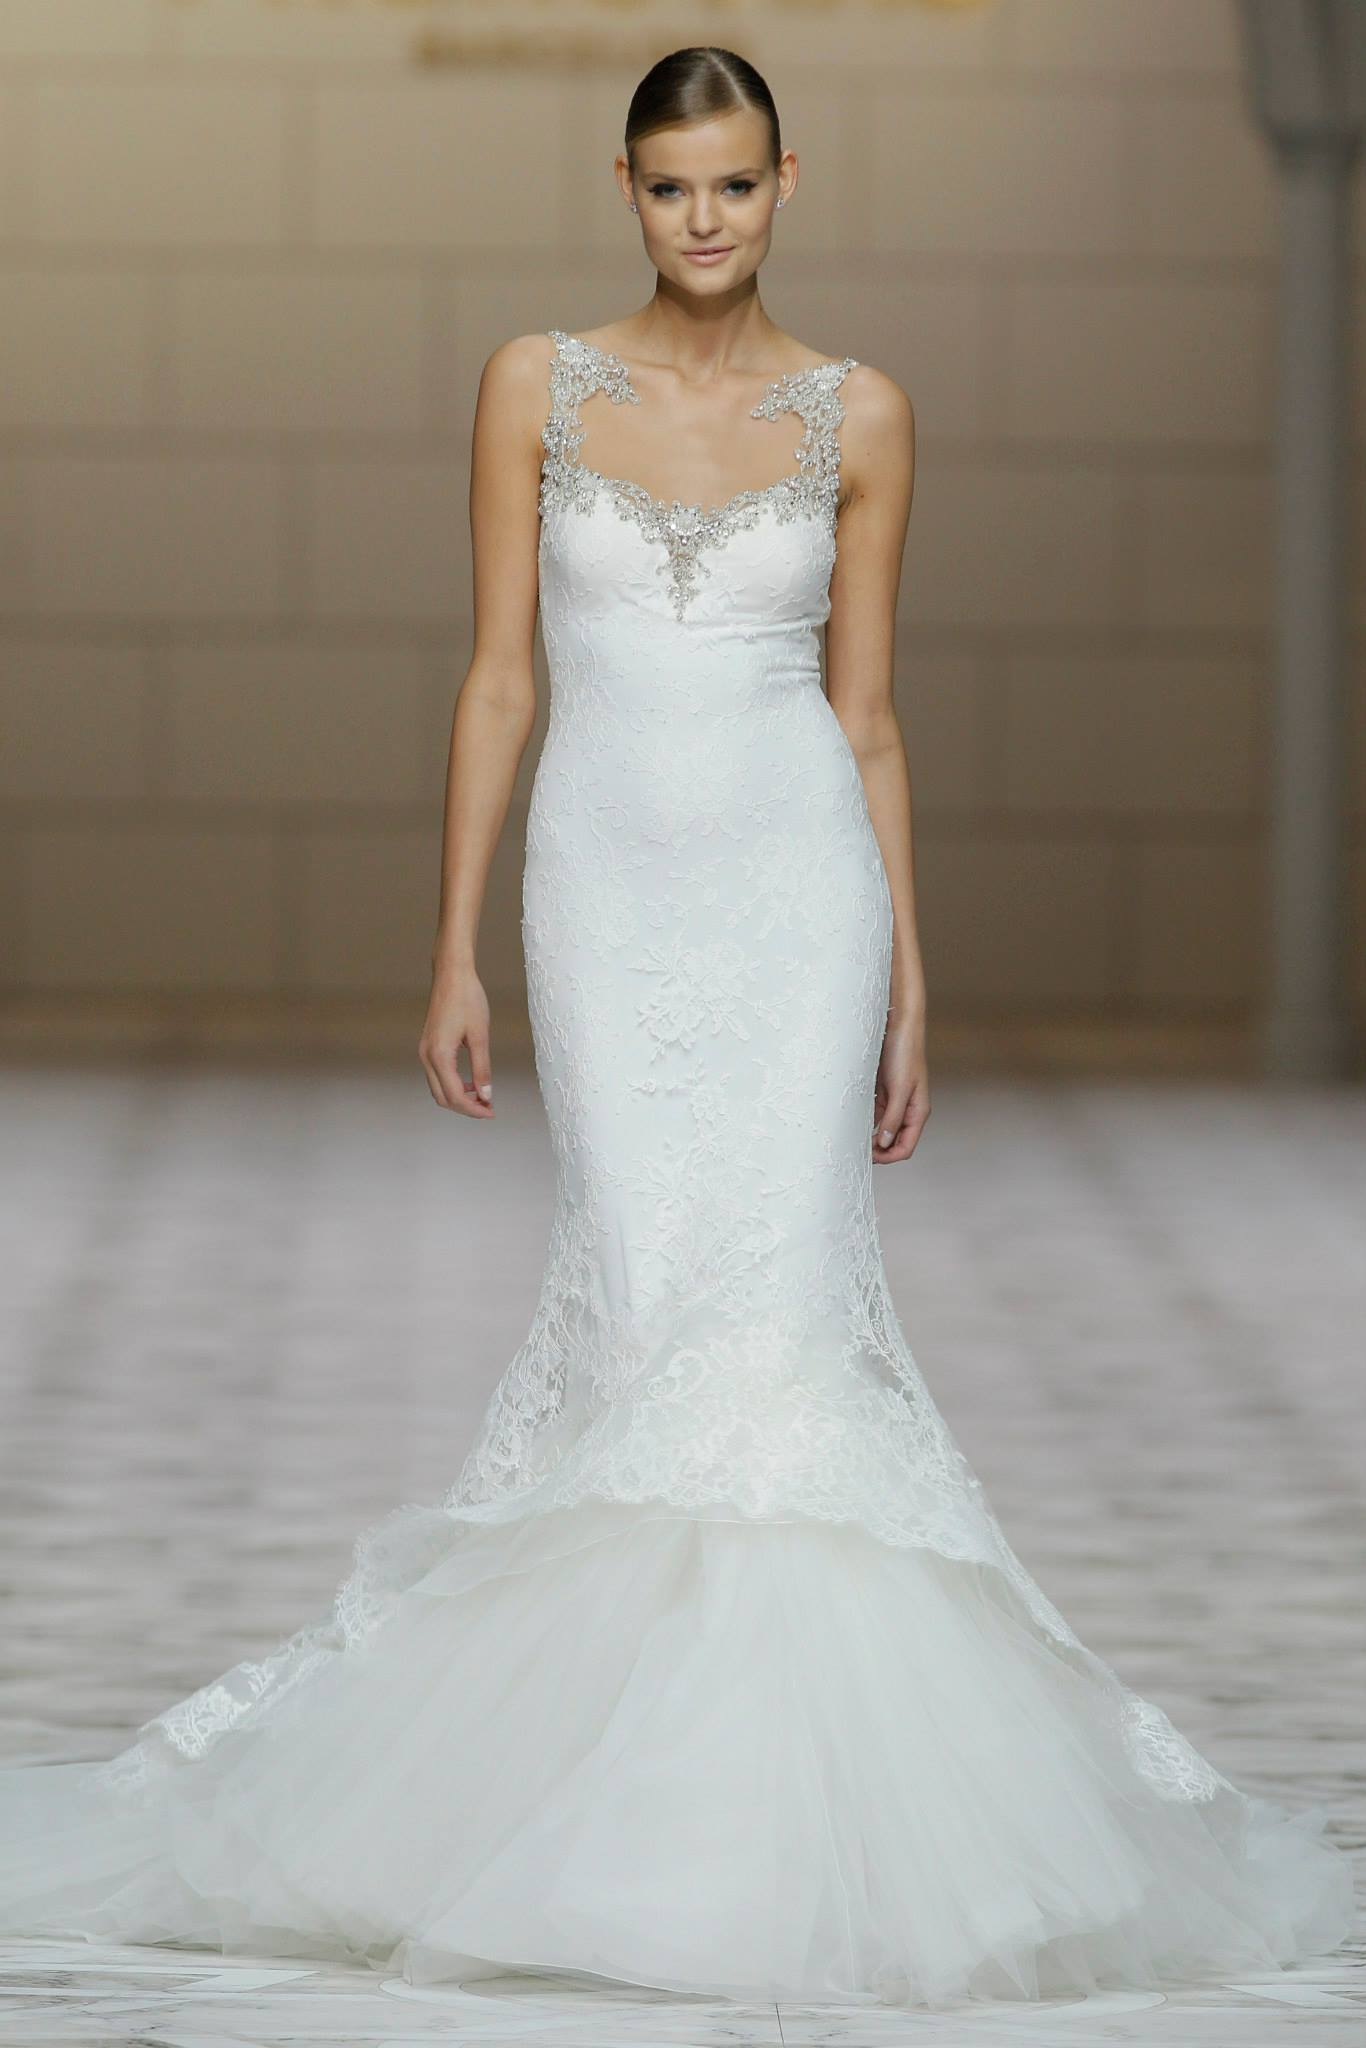 Atelier Pronovias wedding dresses 2015 bridal collection. Take a look